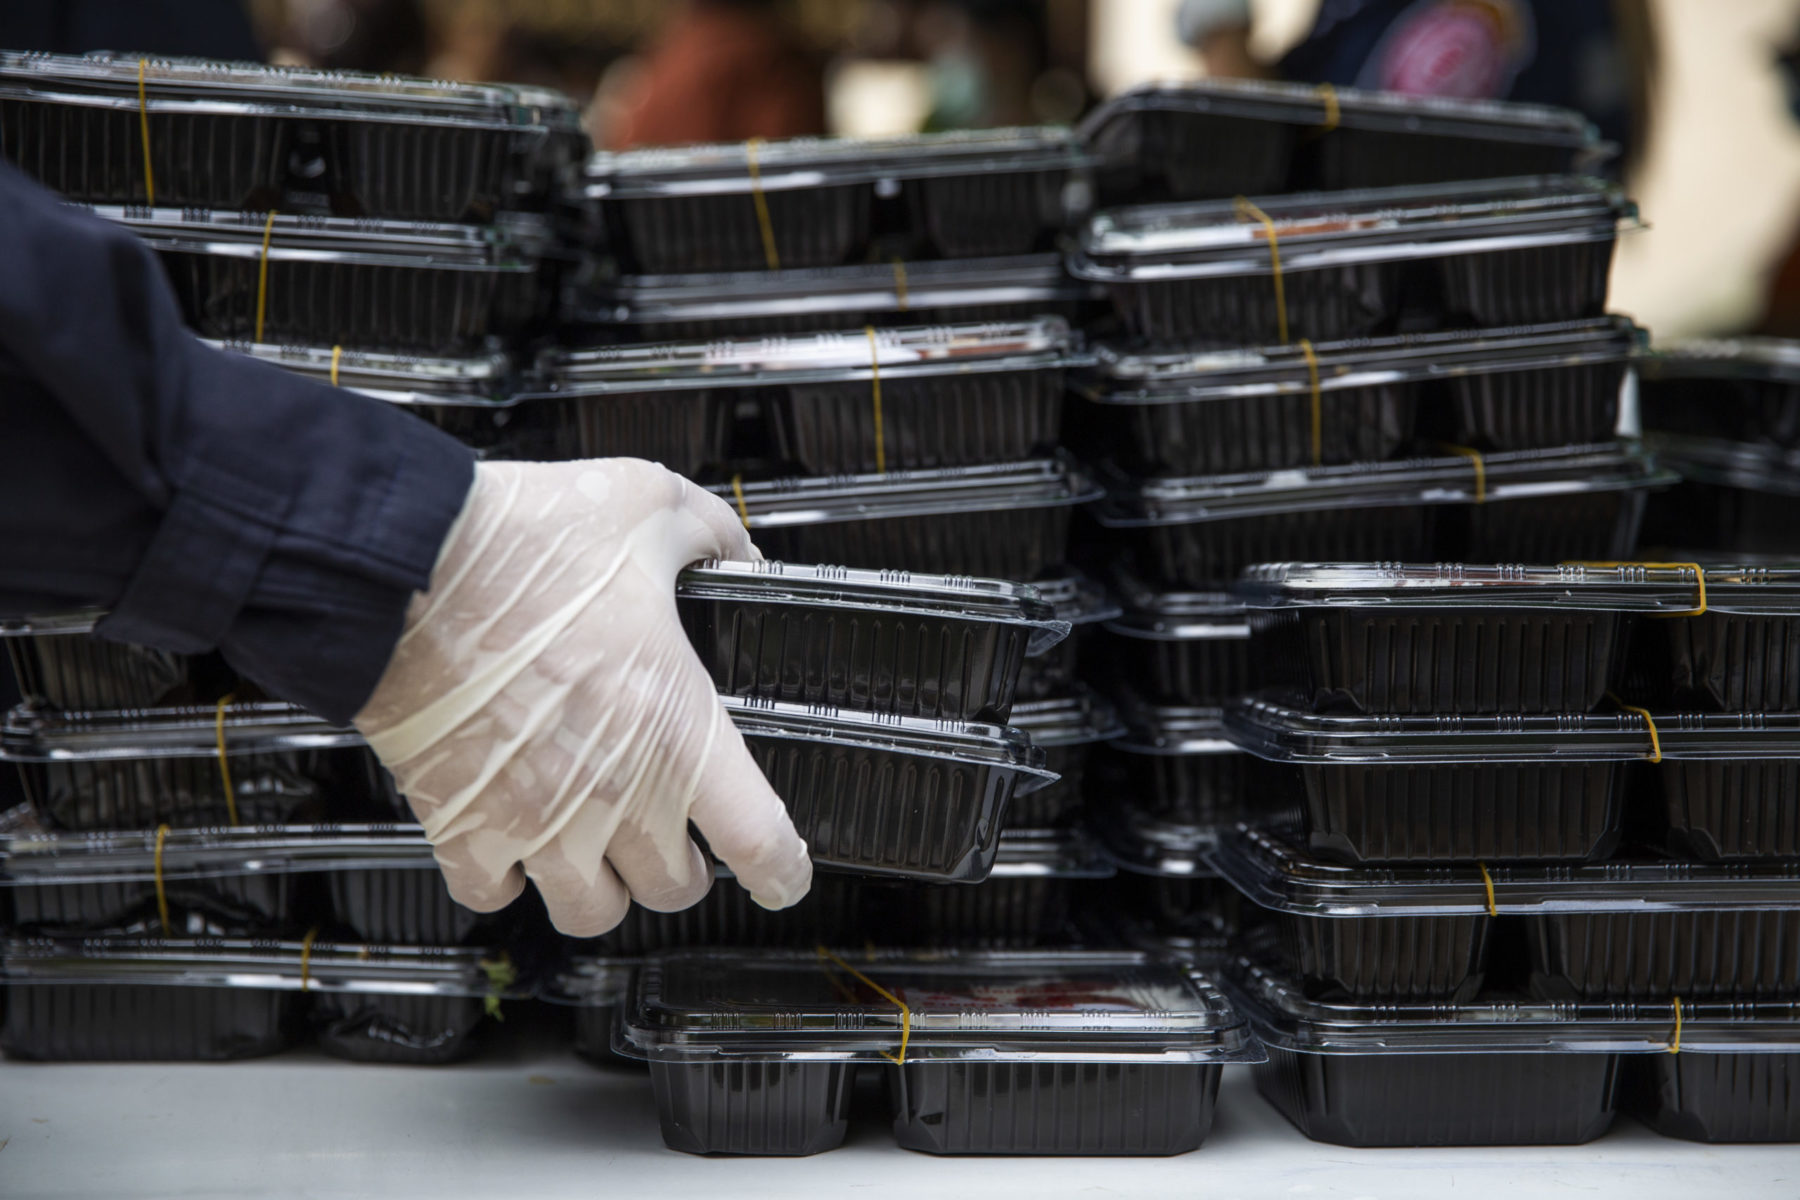 A gloved hand adds a prepared meal to a stack of plastic meal constainers.